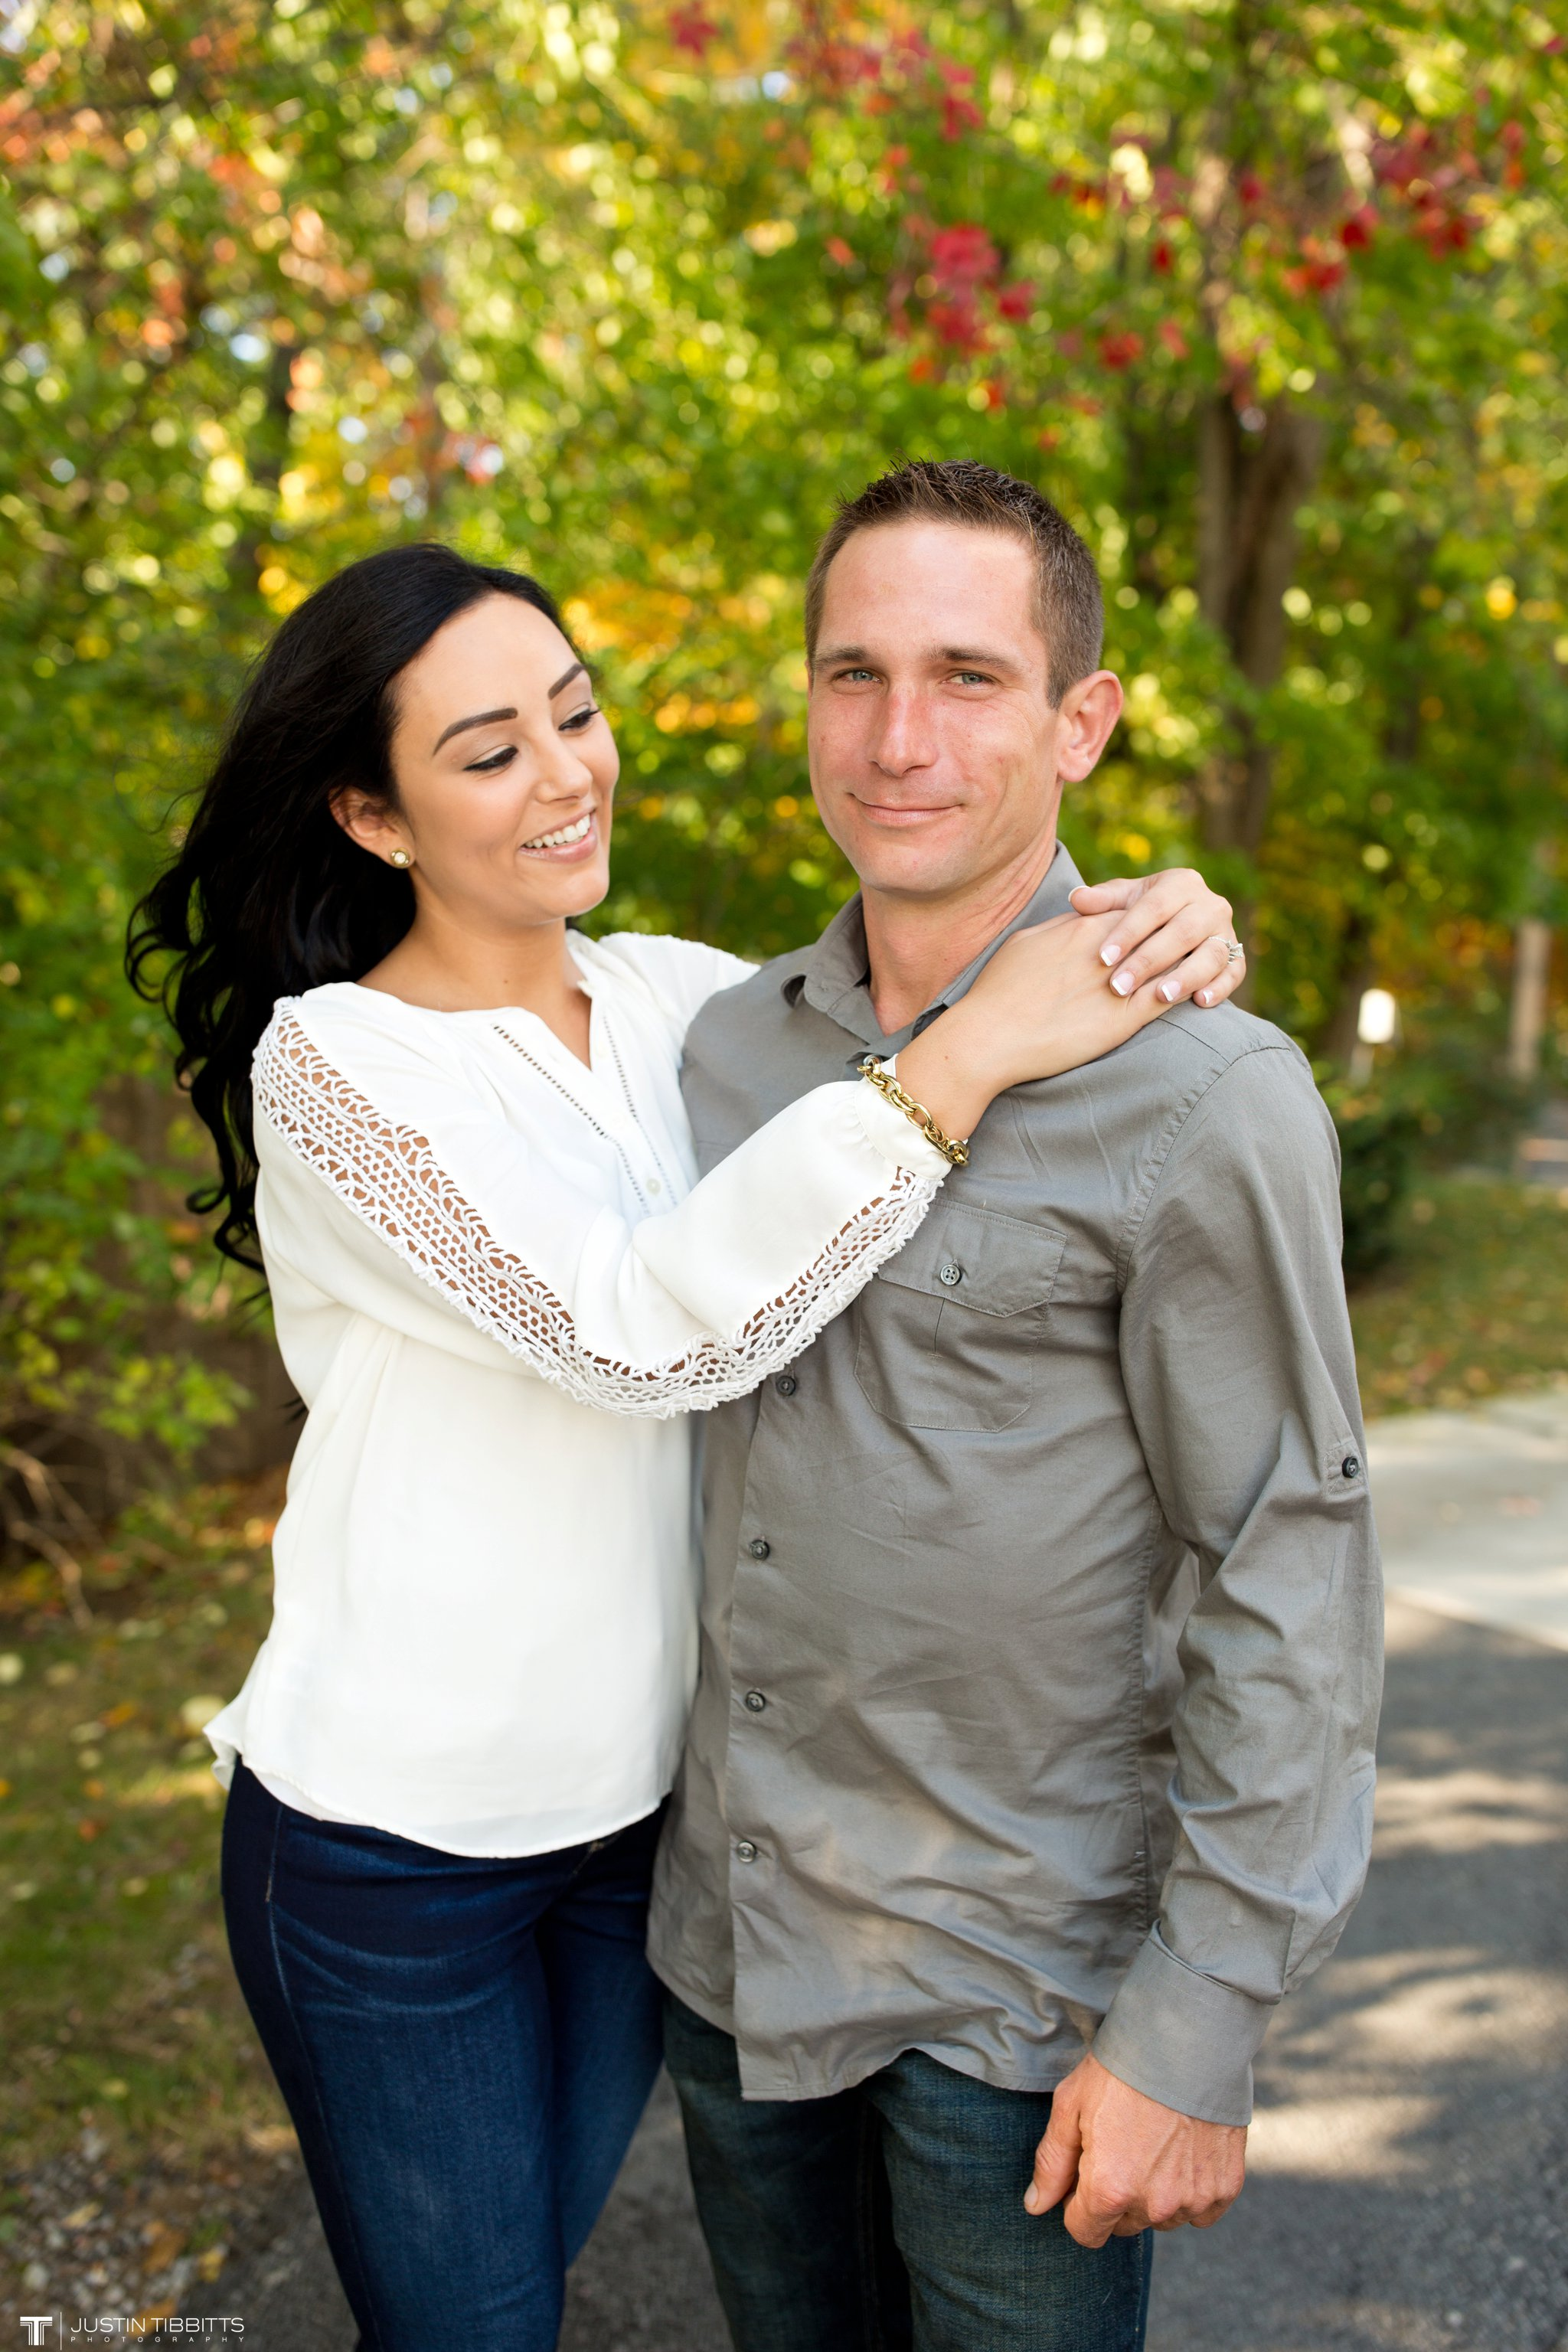 sagamore-engagement-photos-by-justin-tibbitts-photography-with-laina-and-mike_0004